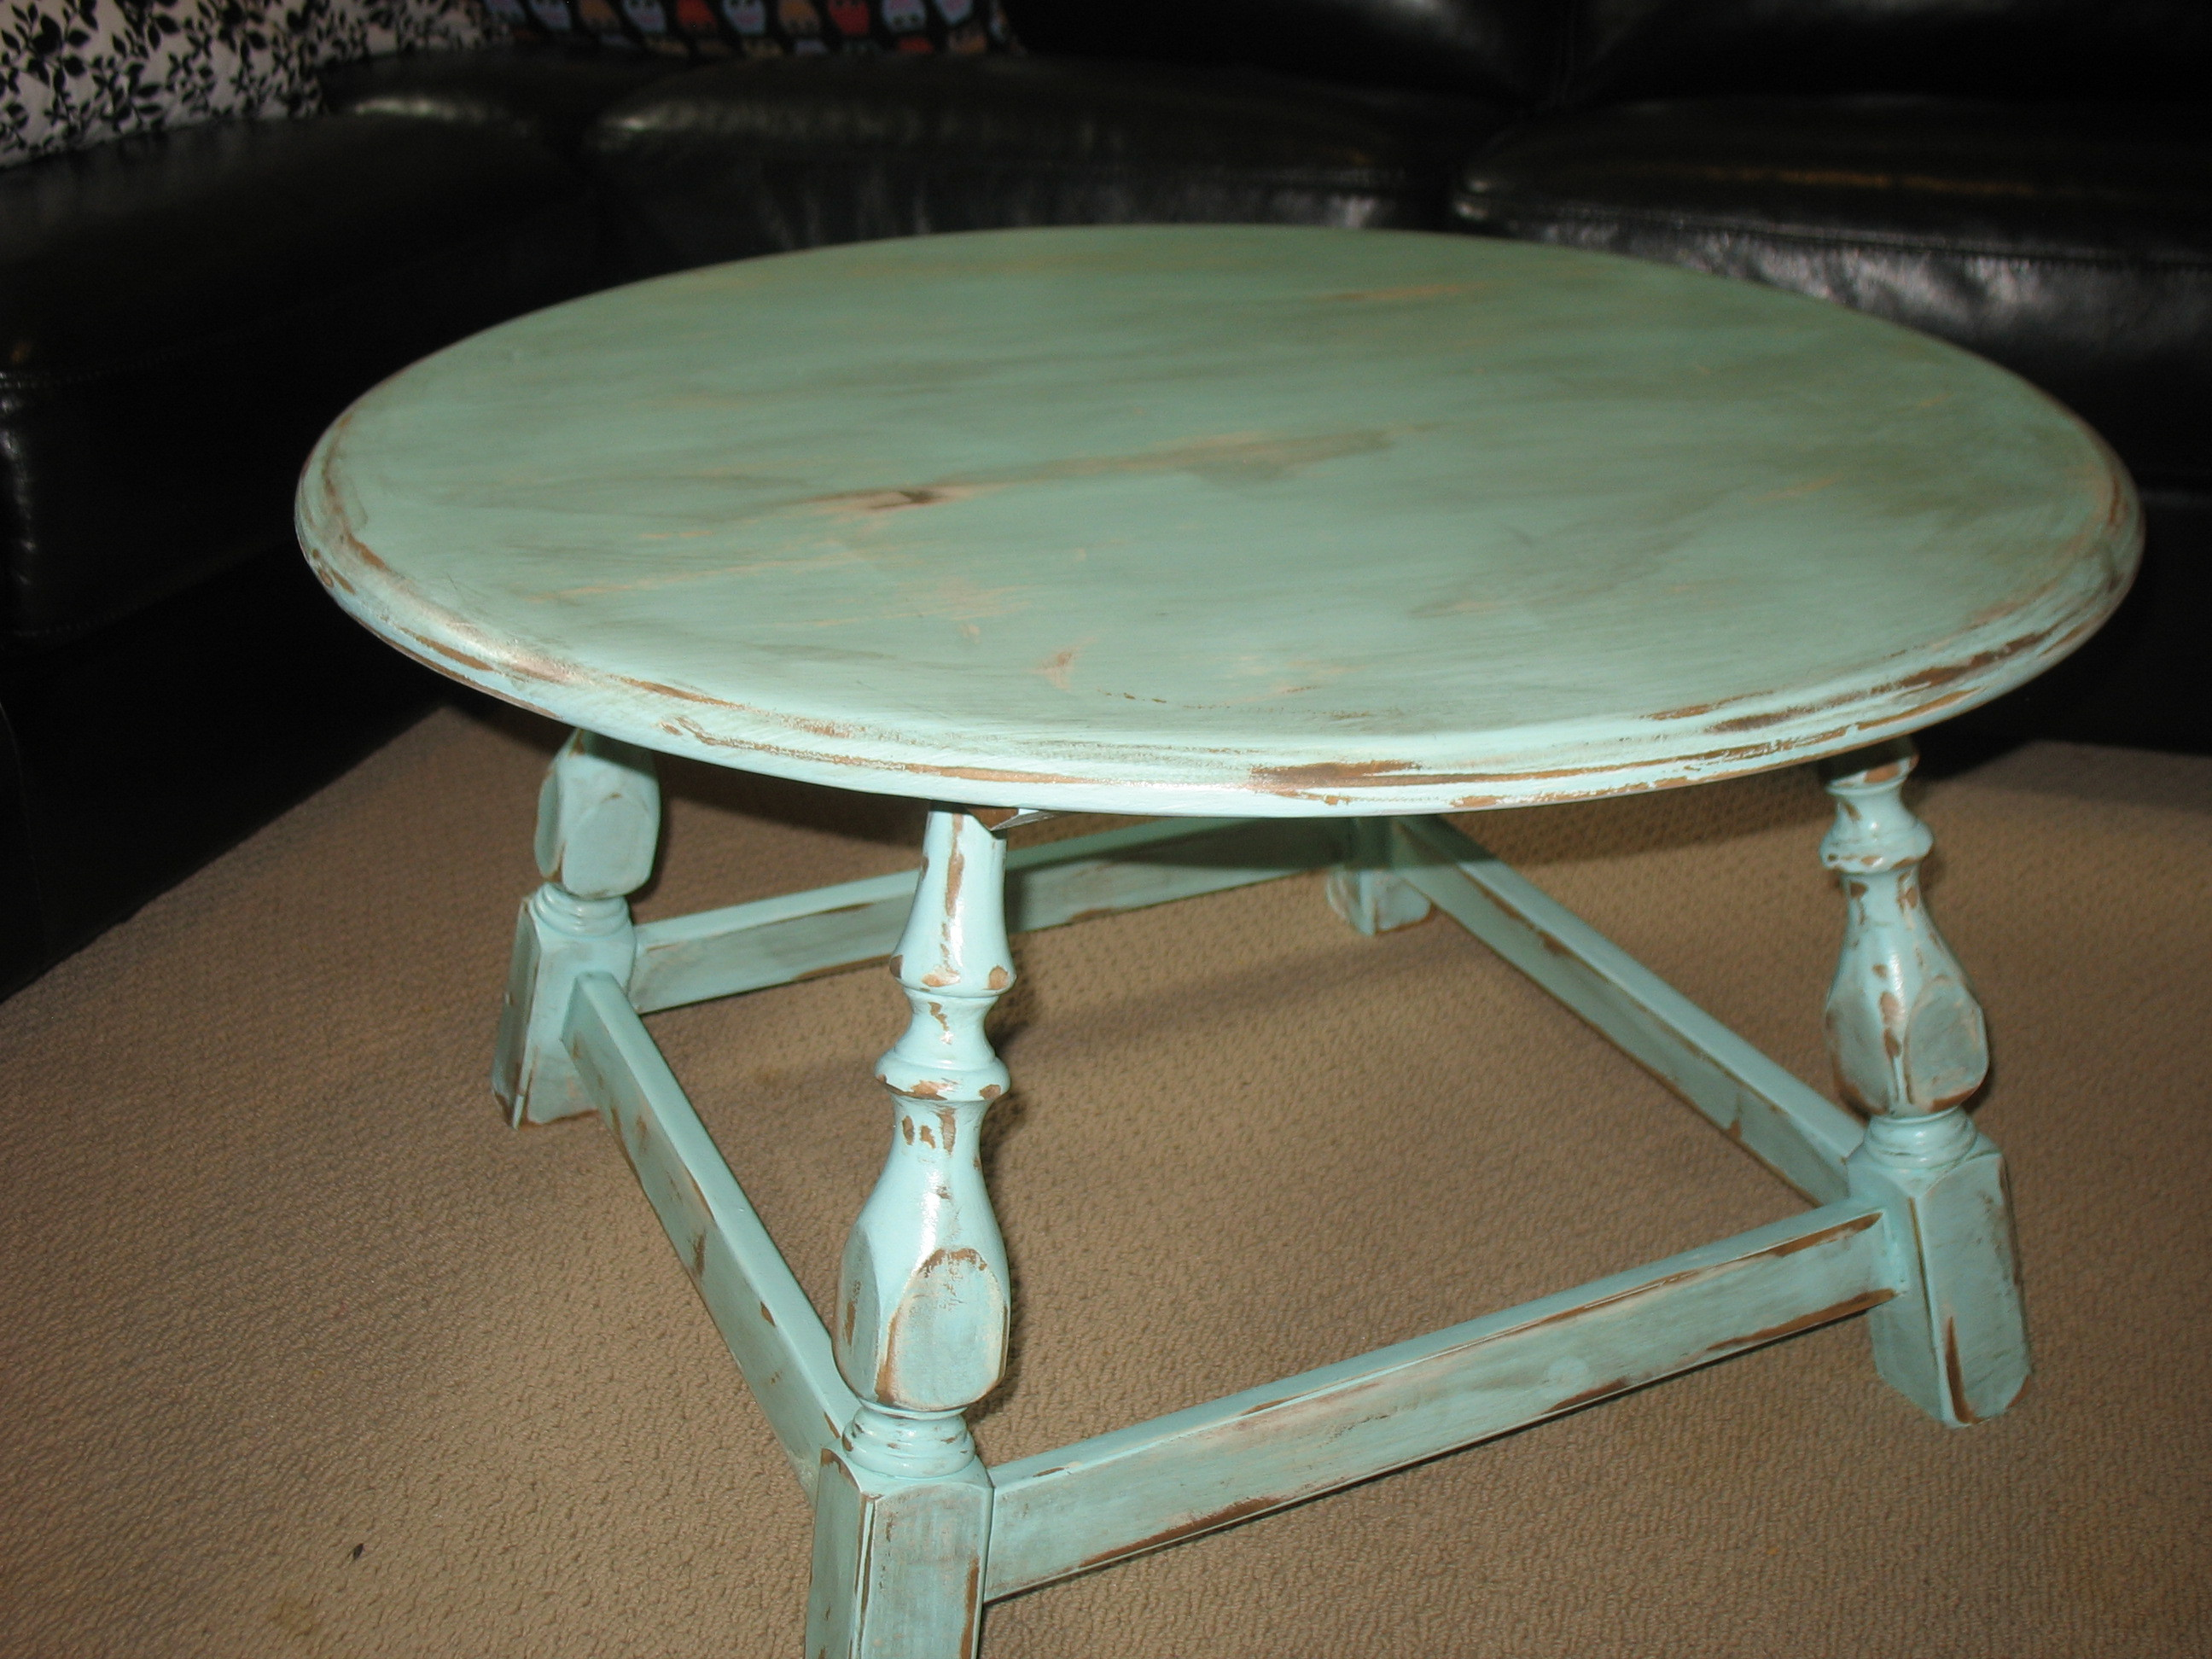 Distressed coffee table design images photos pictures for Distressed white round coffee table